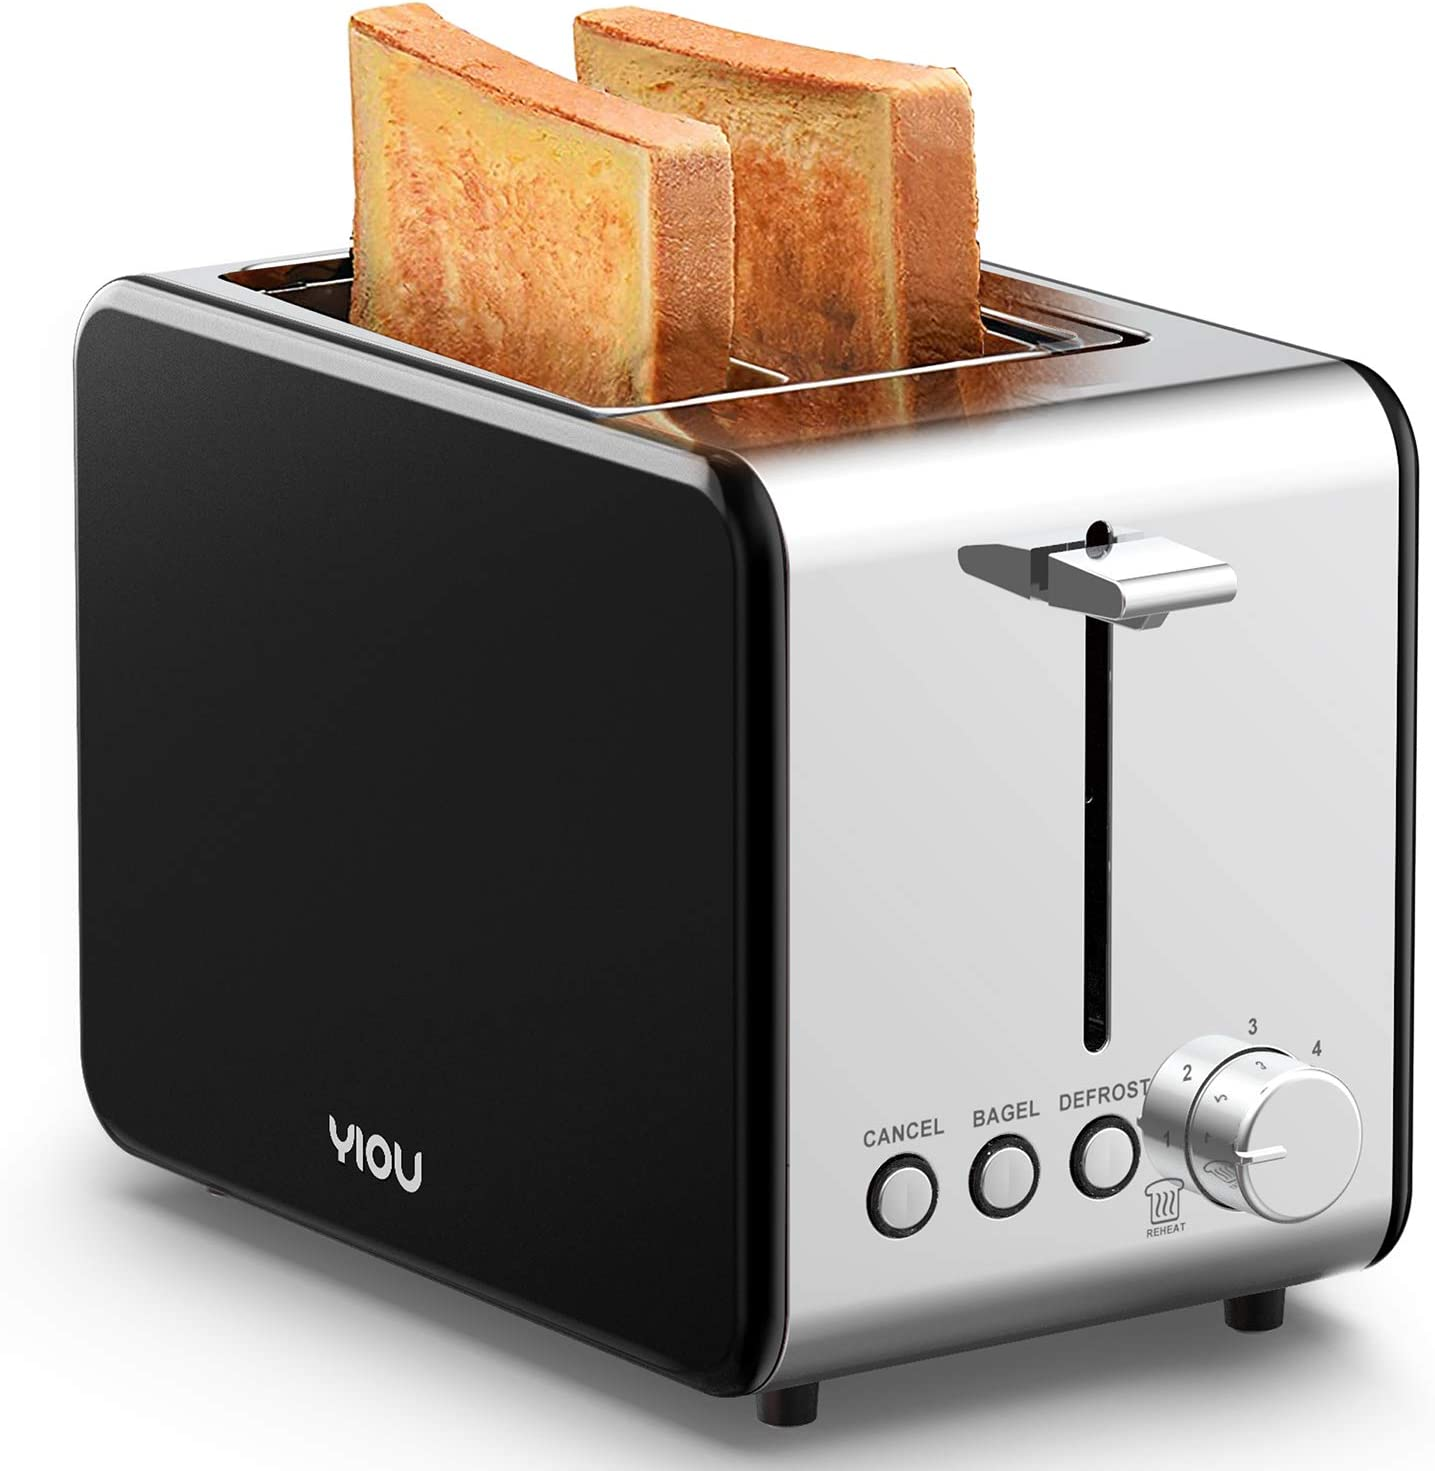 YIOU Toaster 2 Slice, Stainless Steel 2 Slice Toaster 1.5 Inch Extra Wide Slots 6 Browning Setting Toaster Bagel Toaster Reheat Defrost Cancel Function Removable Crumb Tray Easy Cleaning, Black